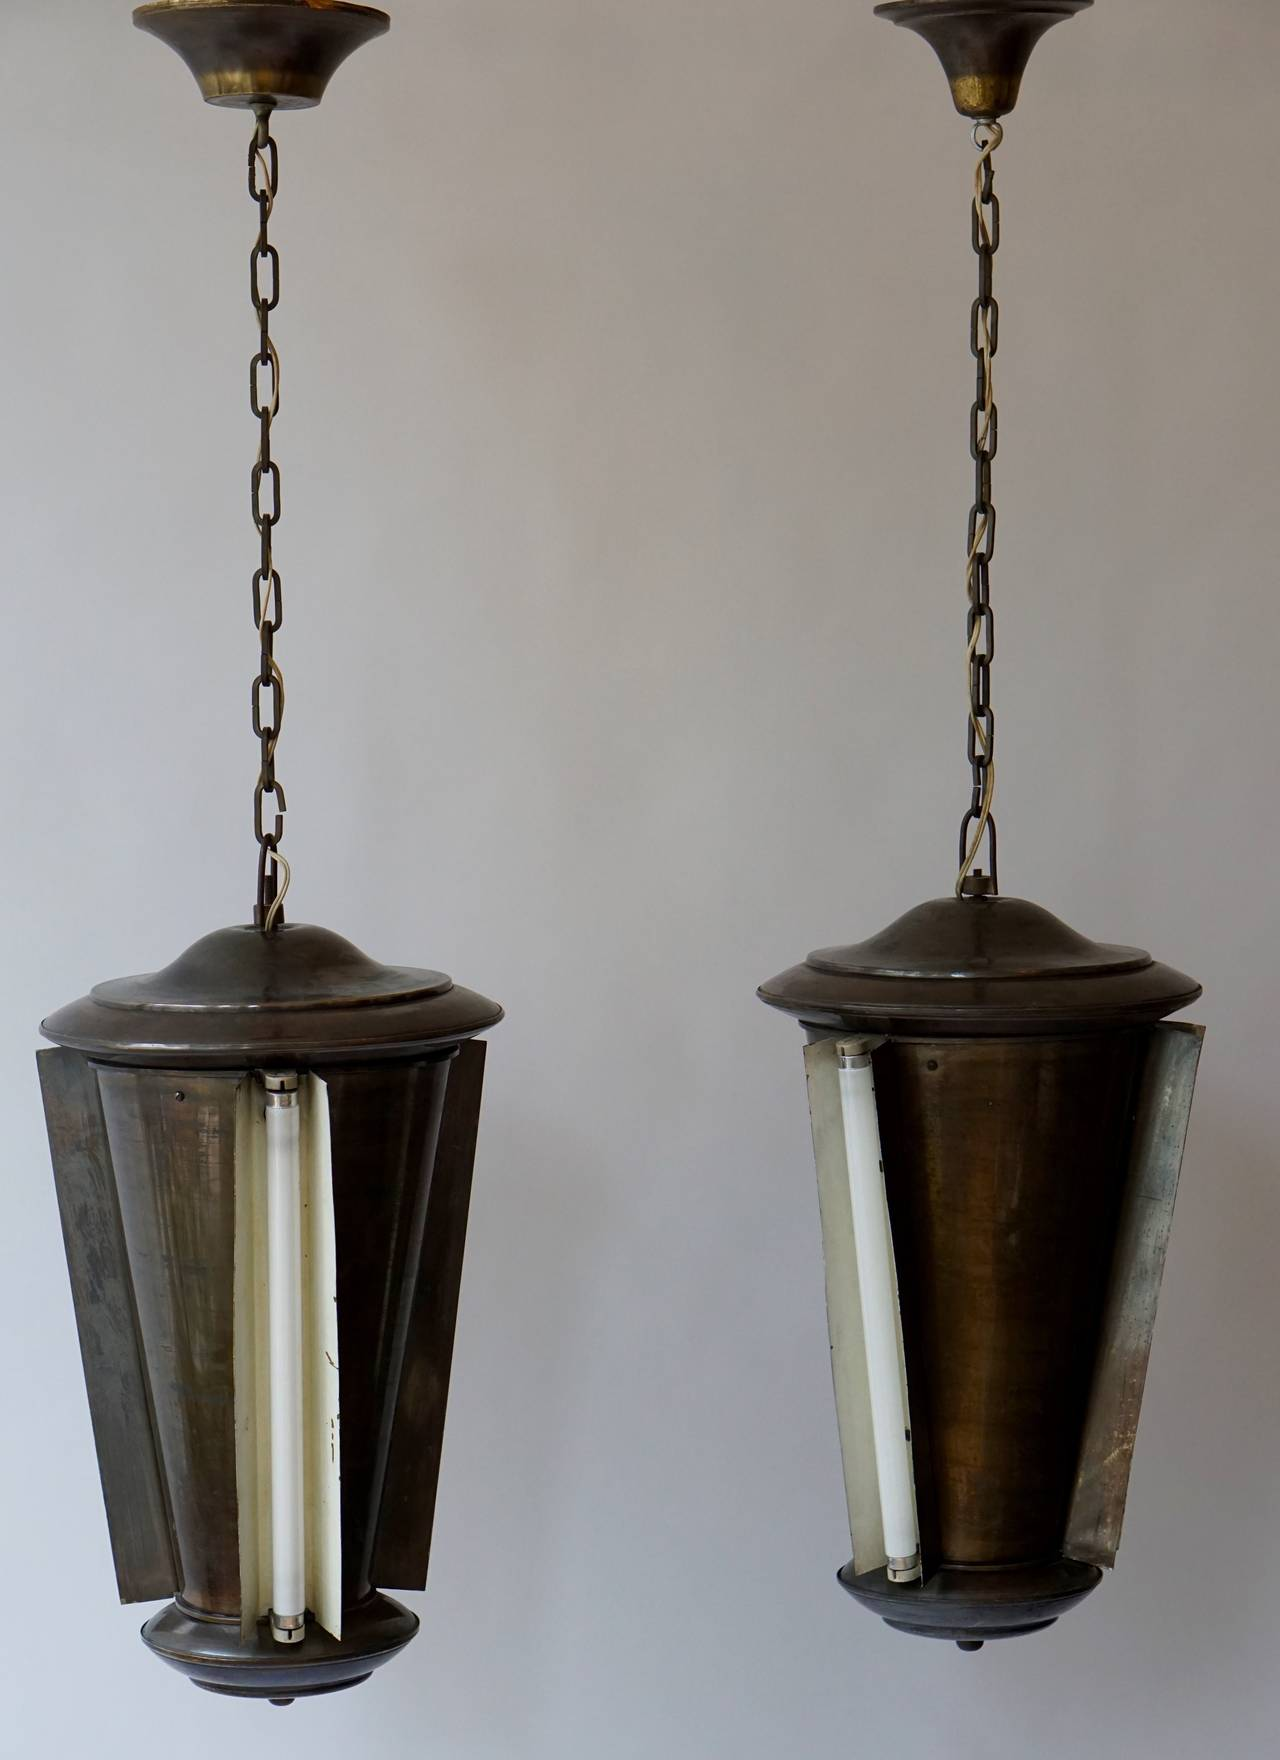 Two conical Industrial lights.